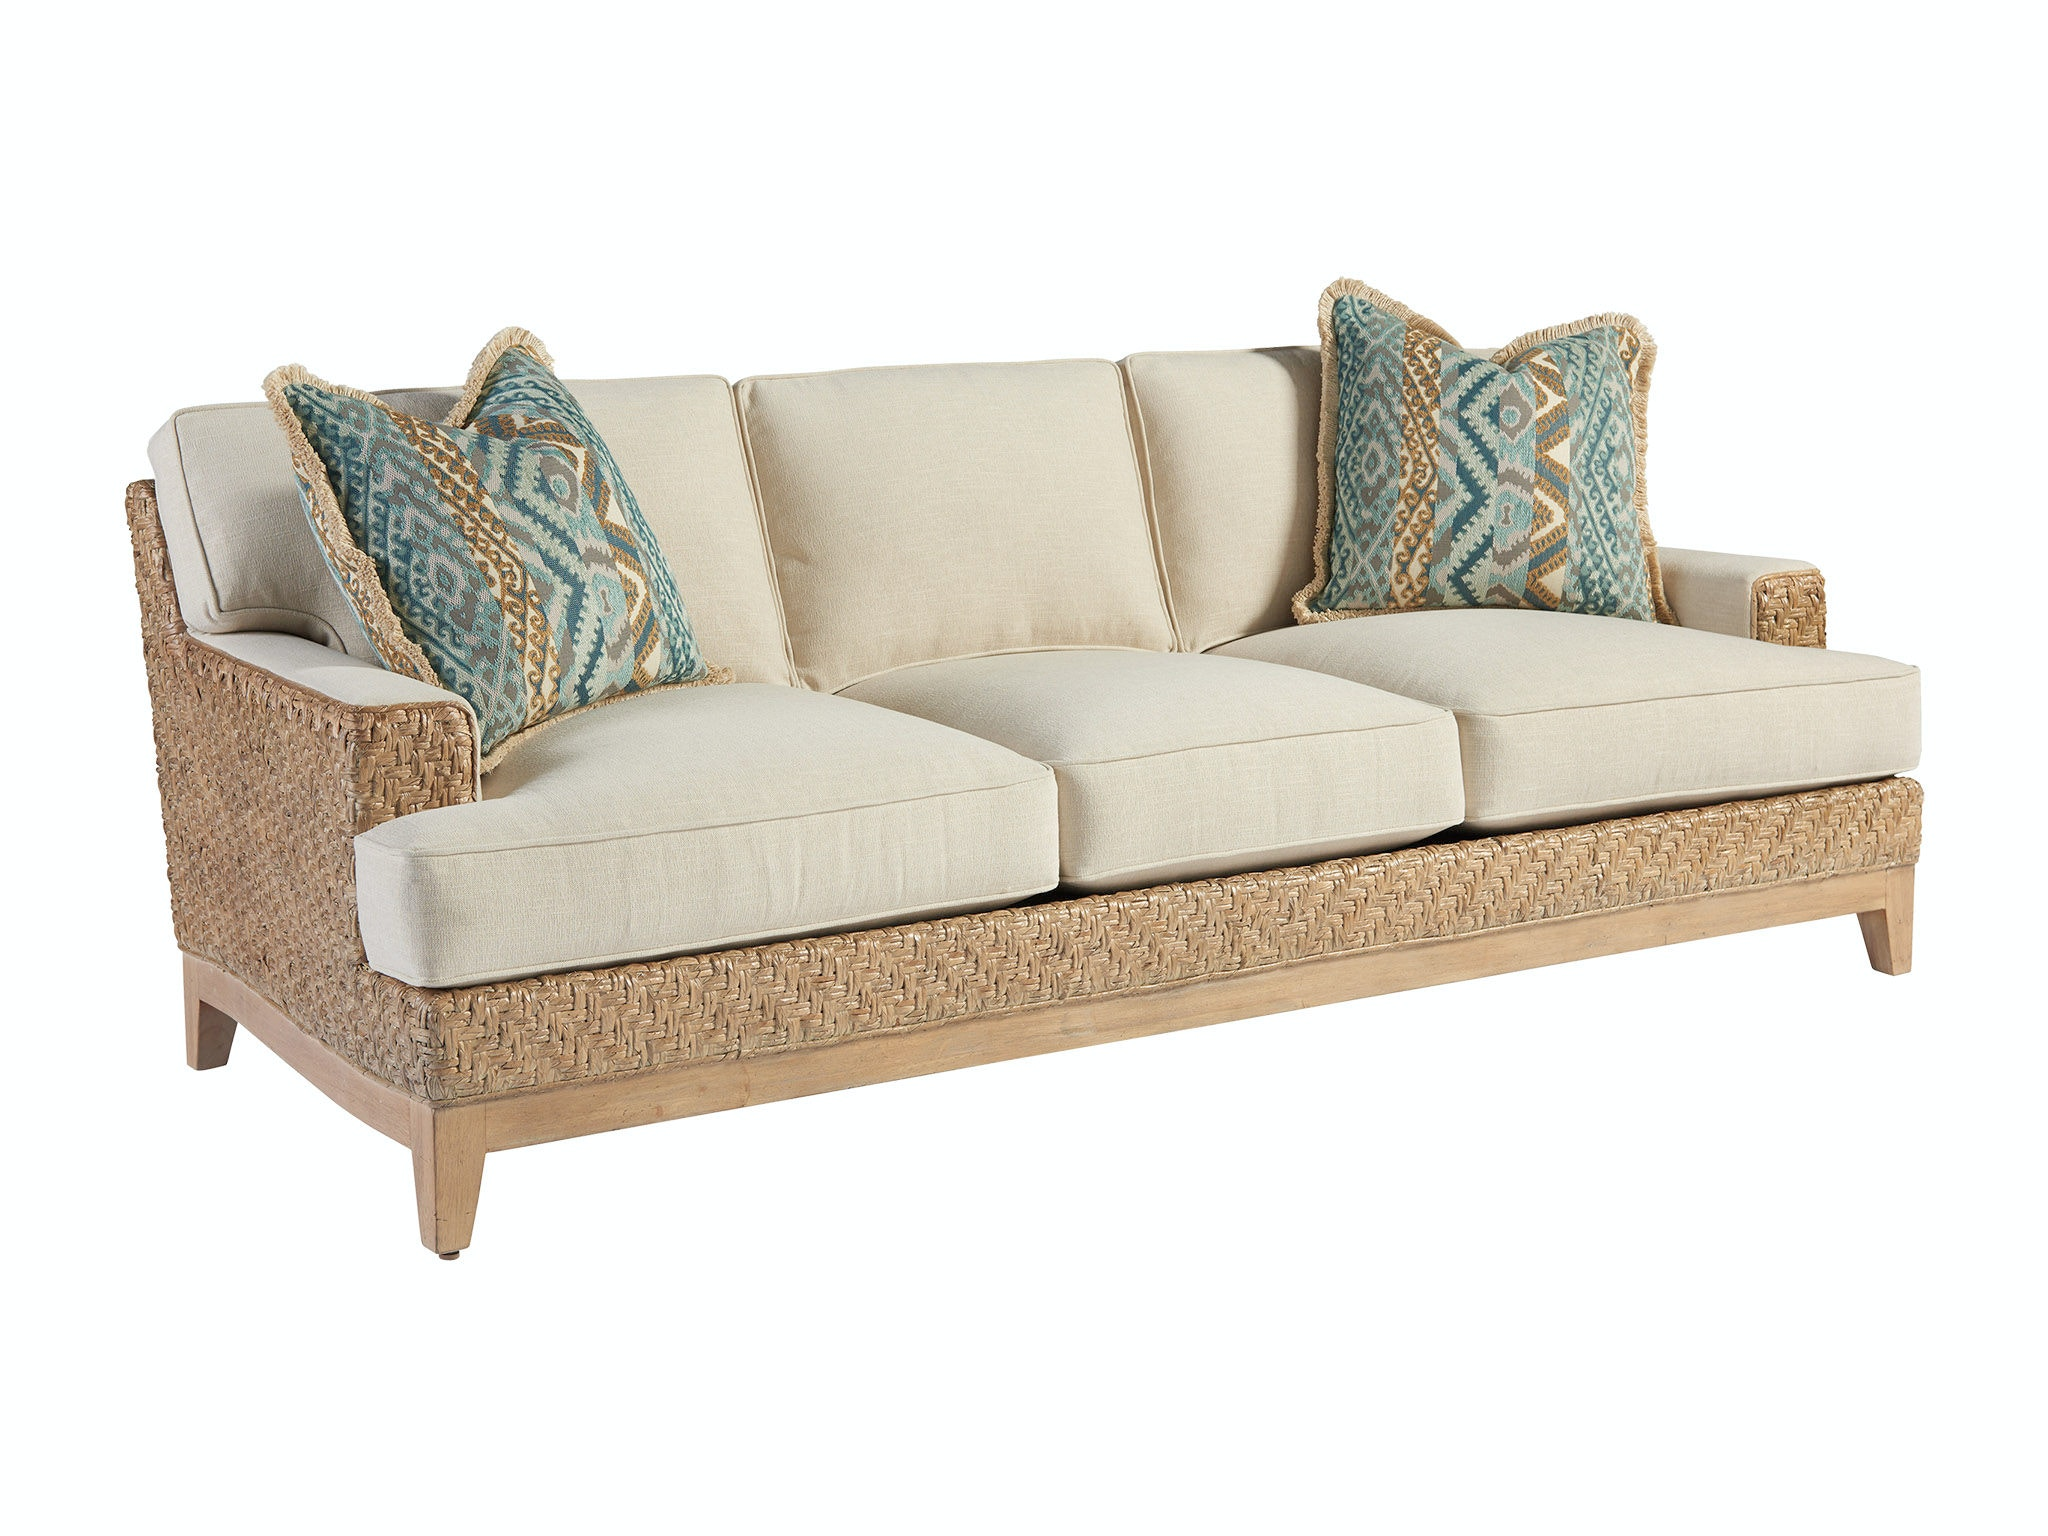 Sofa Take Home Today Tommy Bahama Home Living Room Danville Sofa 1930 33 Pala